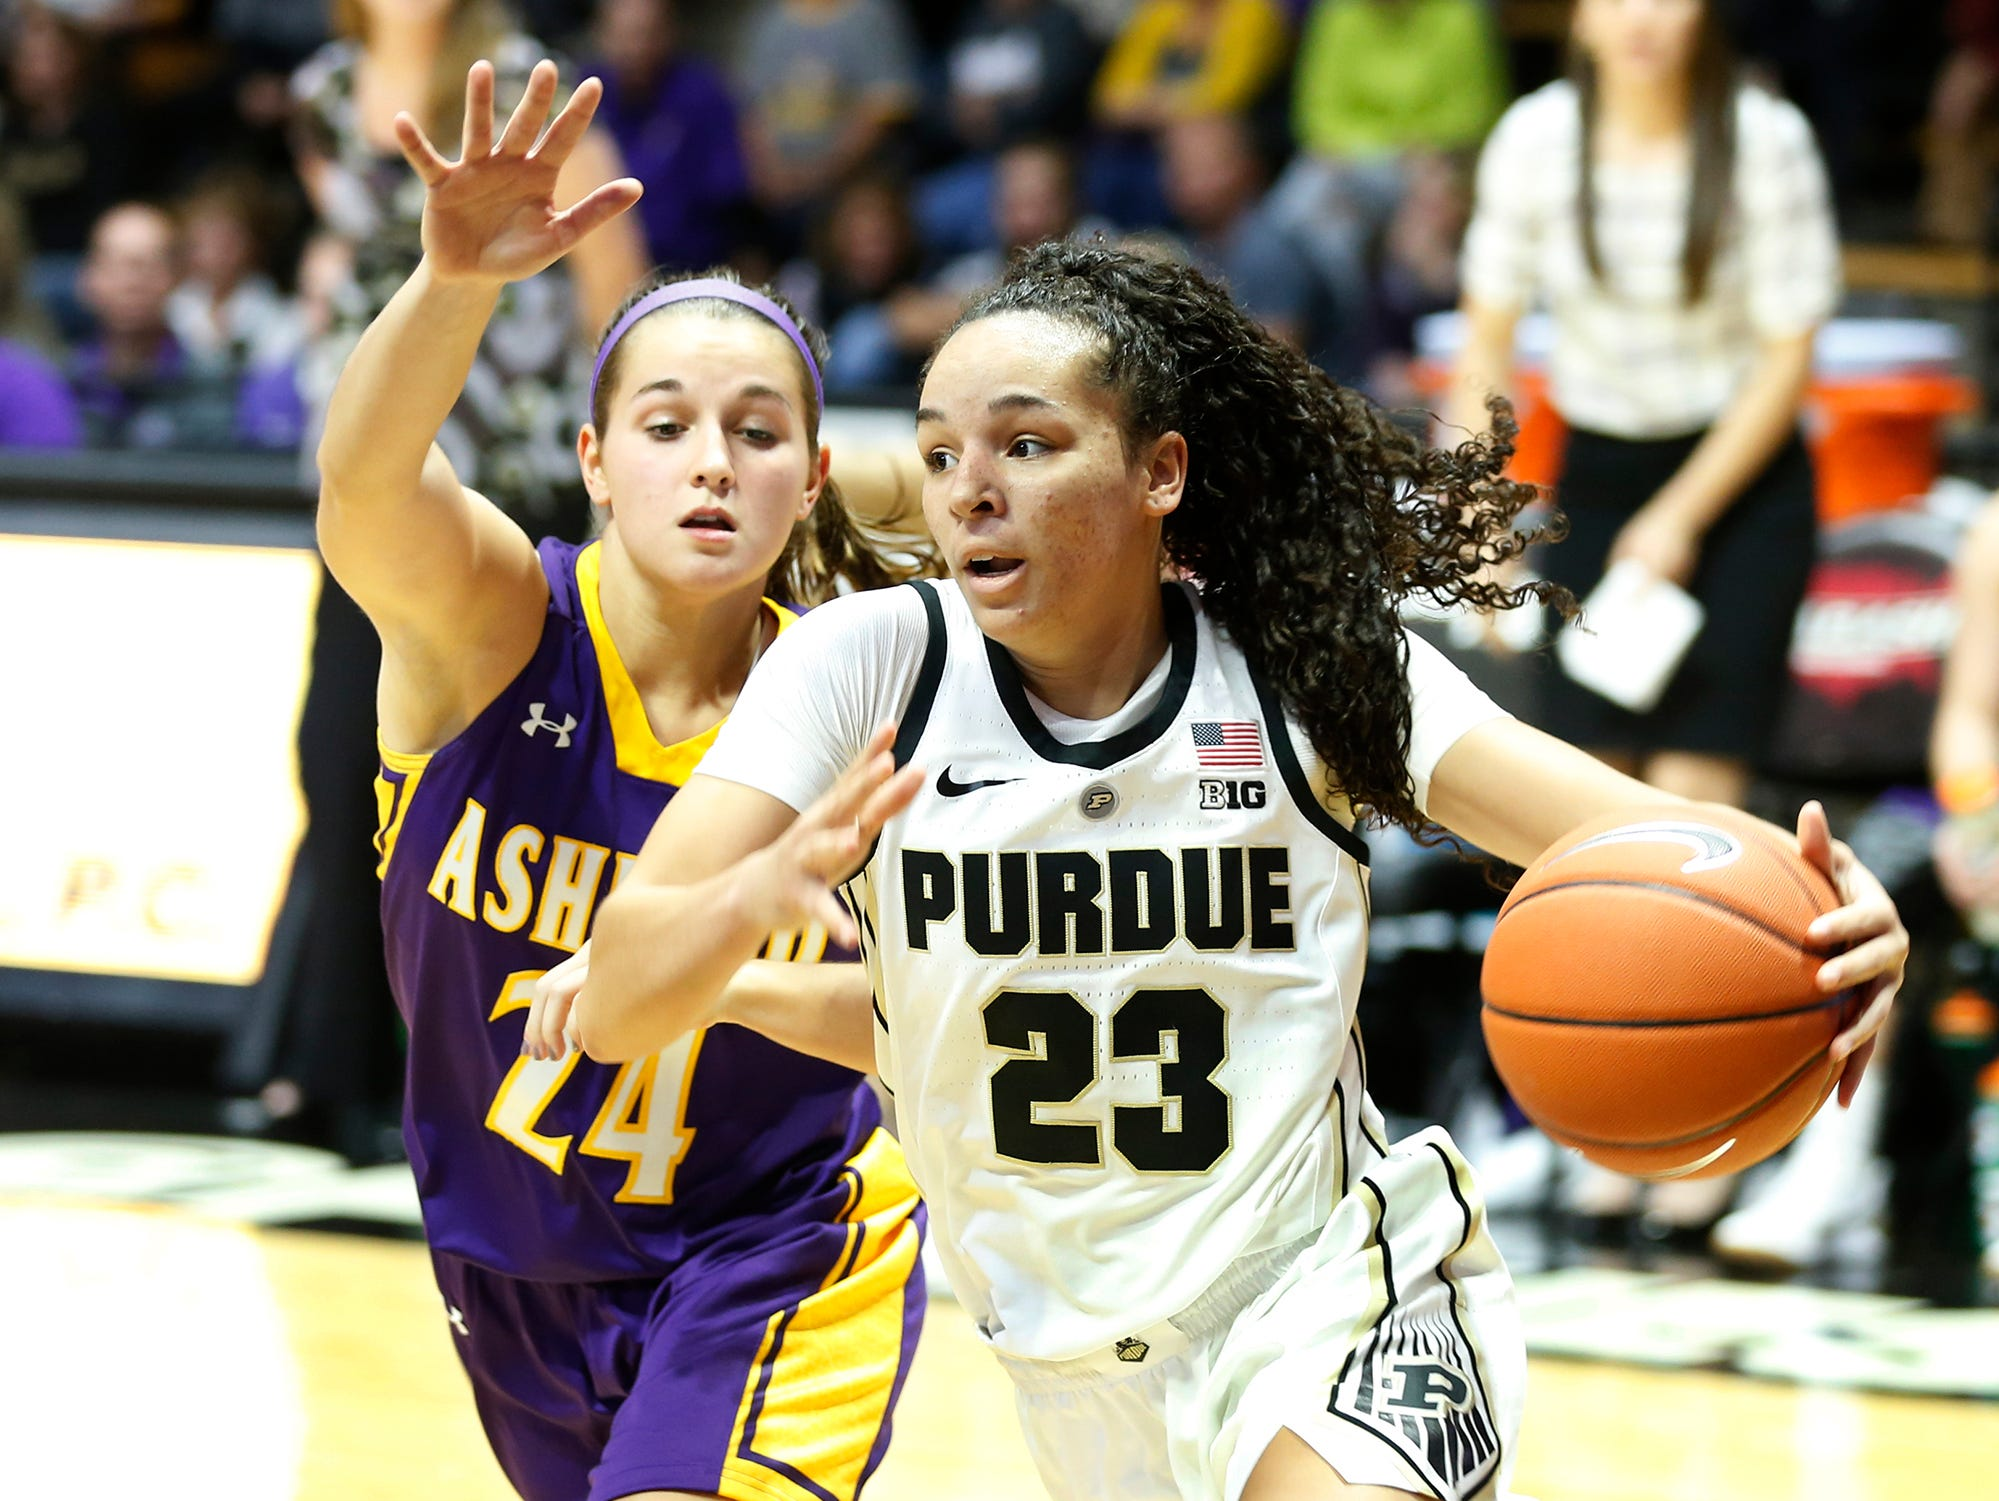 Kayana Traylor of Purdue with a drive past Brooke Smith of Ashland Sunday, November 4, 2018, at Mackey Arena.